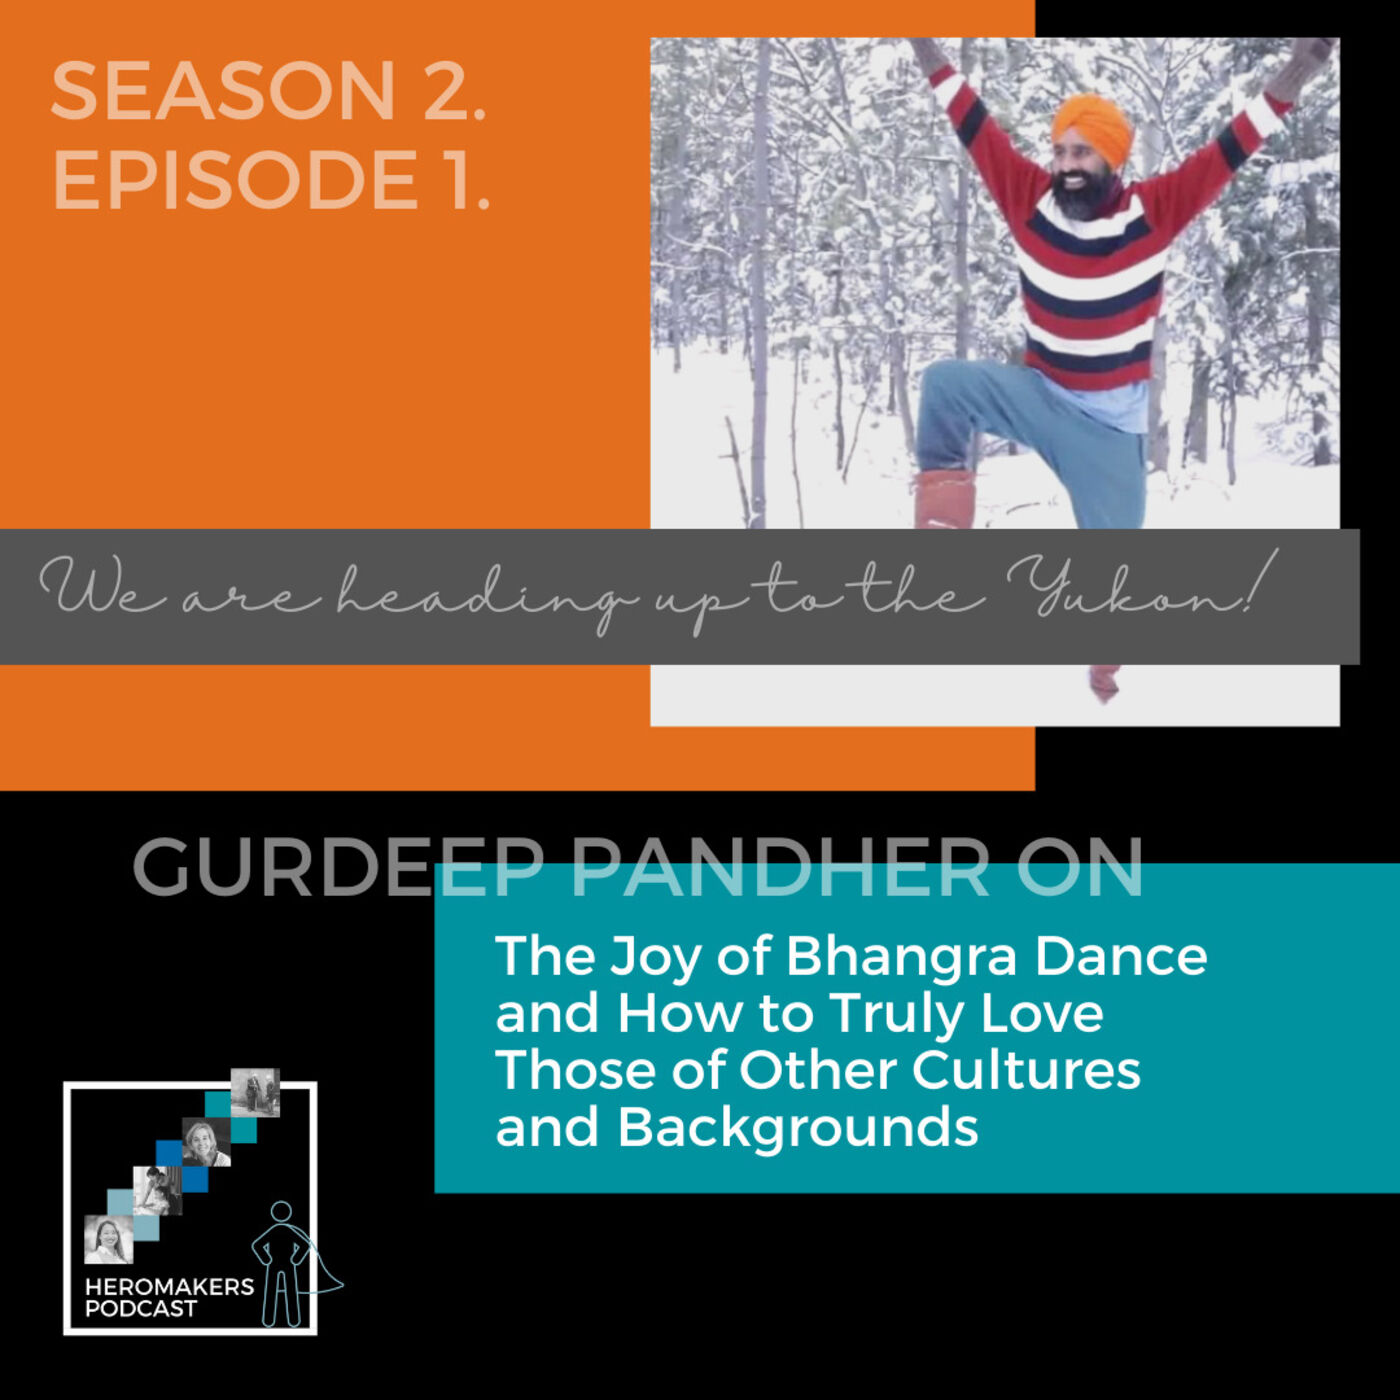 Gurdeep Pandher on The Joy of Bhangra Dance and How to Truly Love Those of Other Cultures and Backgrounds